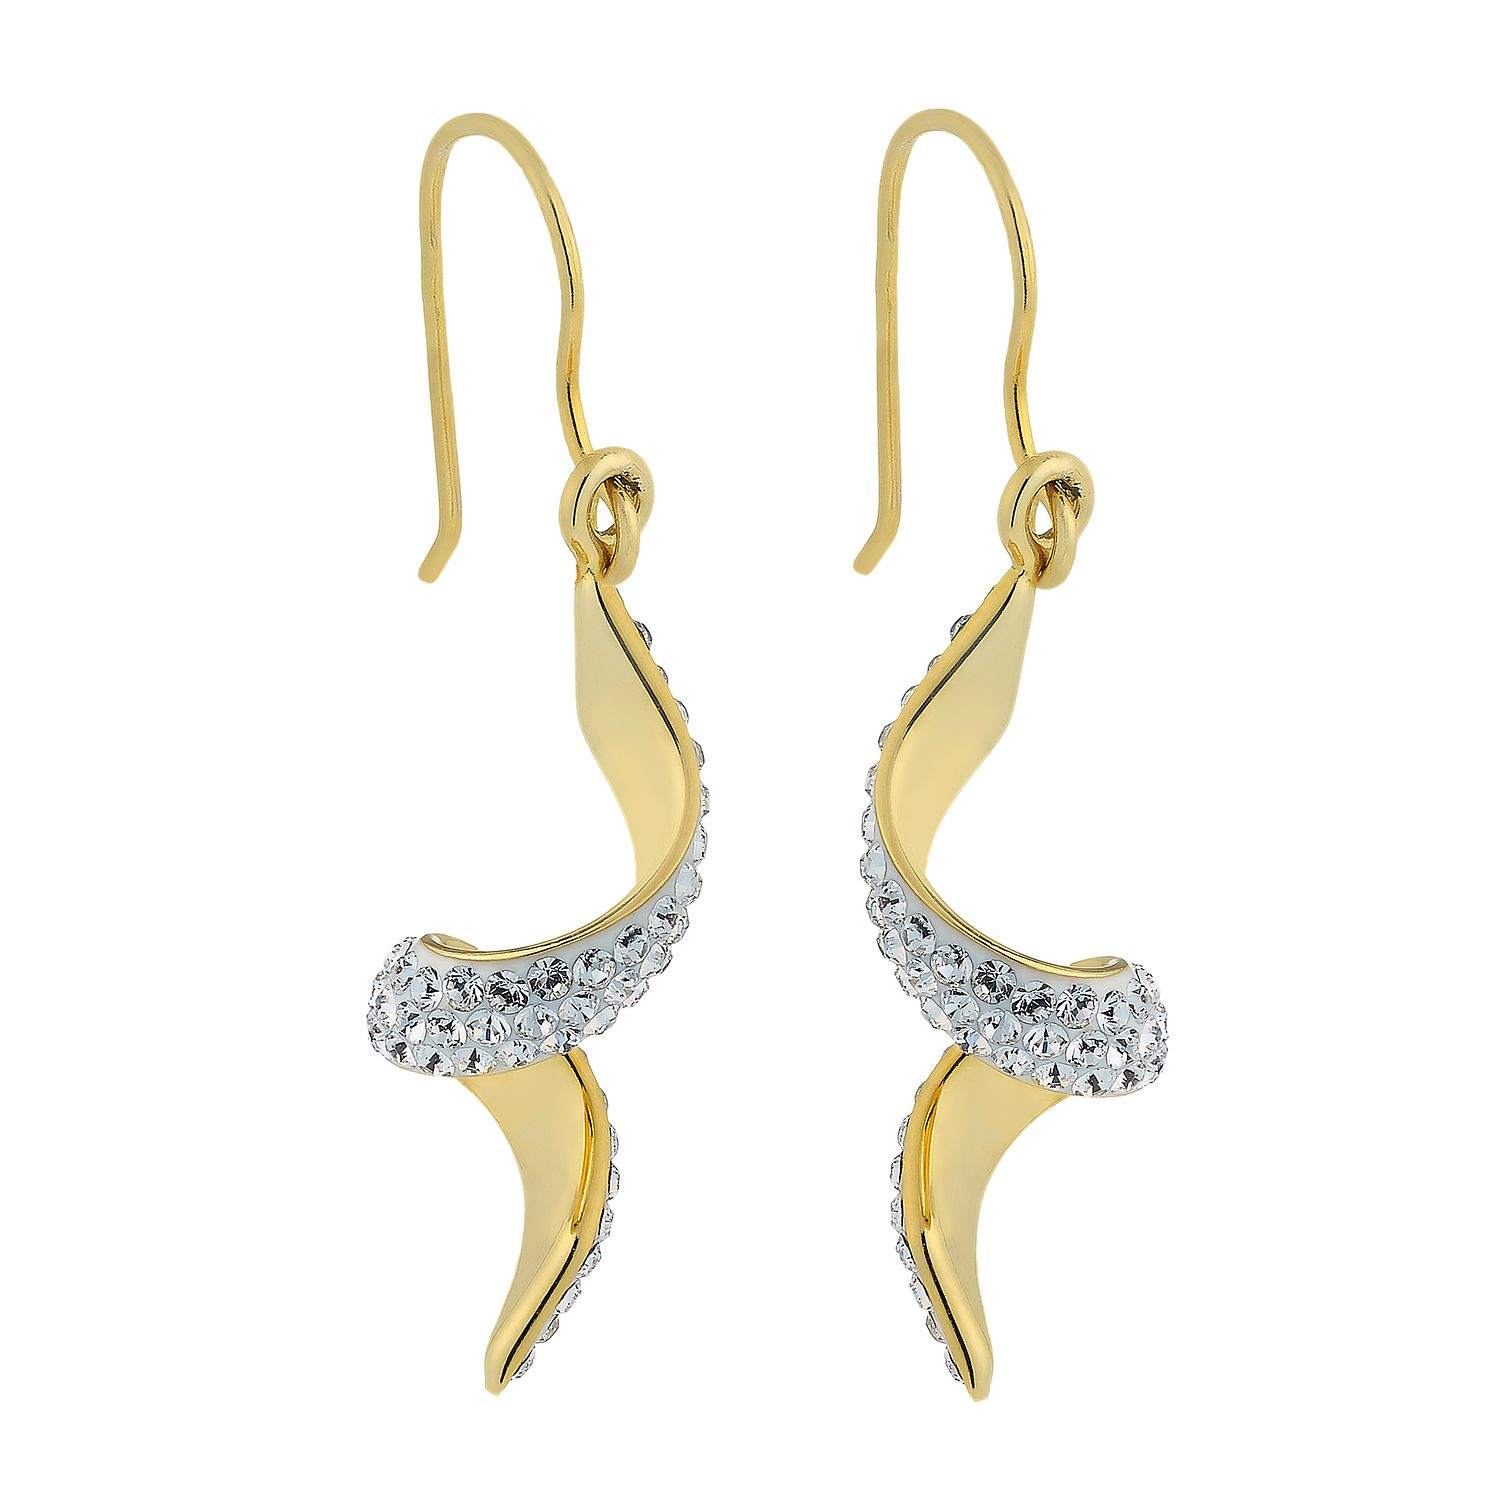 Evoke Silver & Yellow Gold Plated Crystal Set Twist Earrings - Product number 2301350